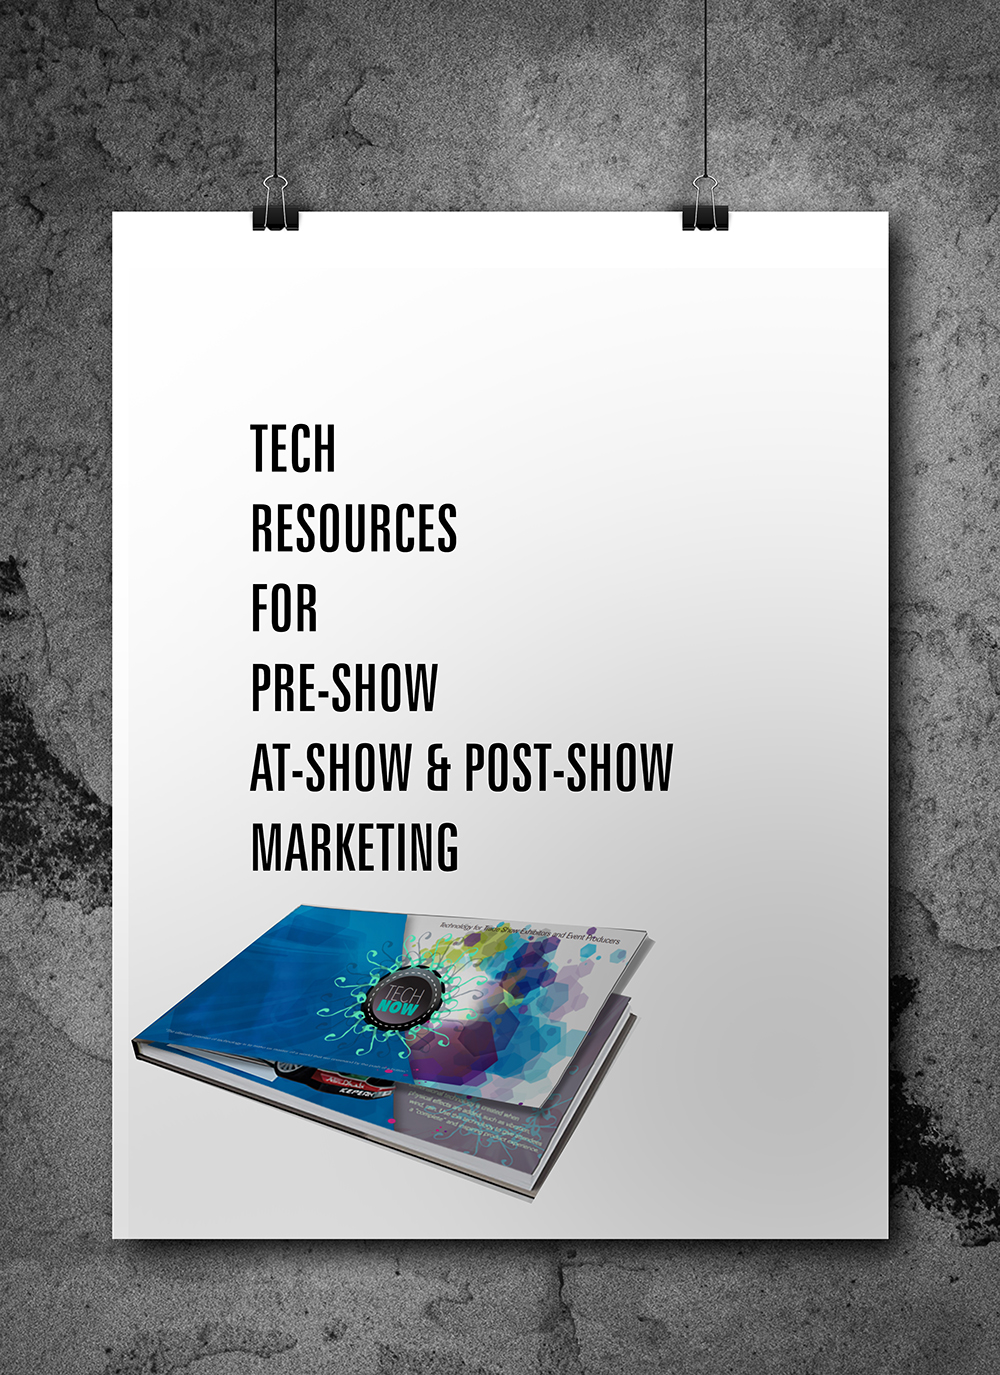 TRADE_SHOW_TECHNOLOGY-2